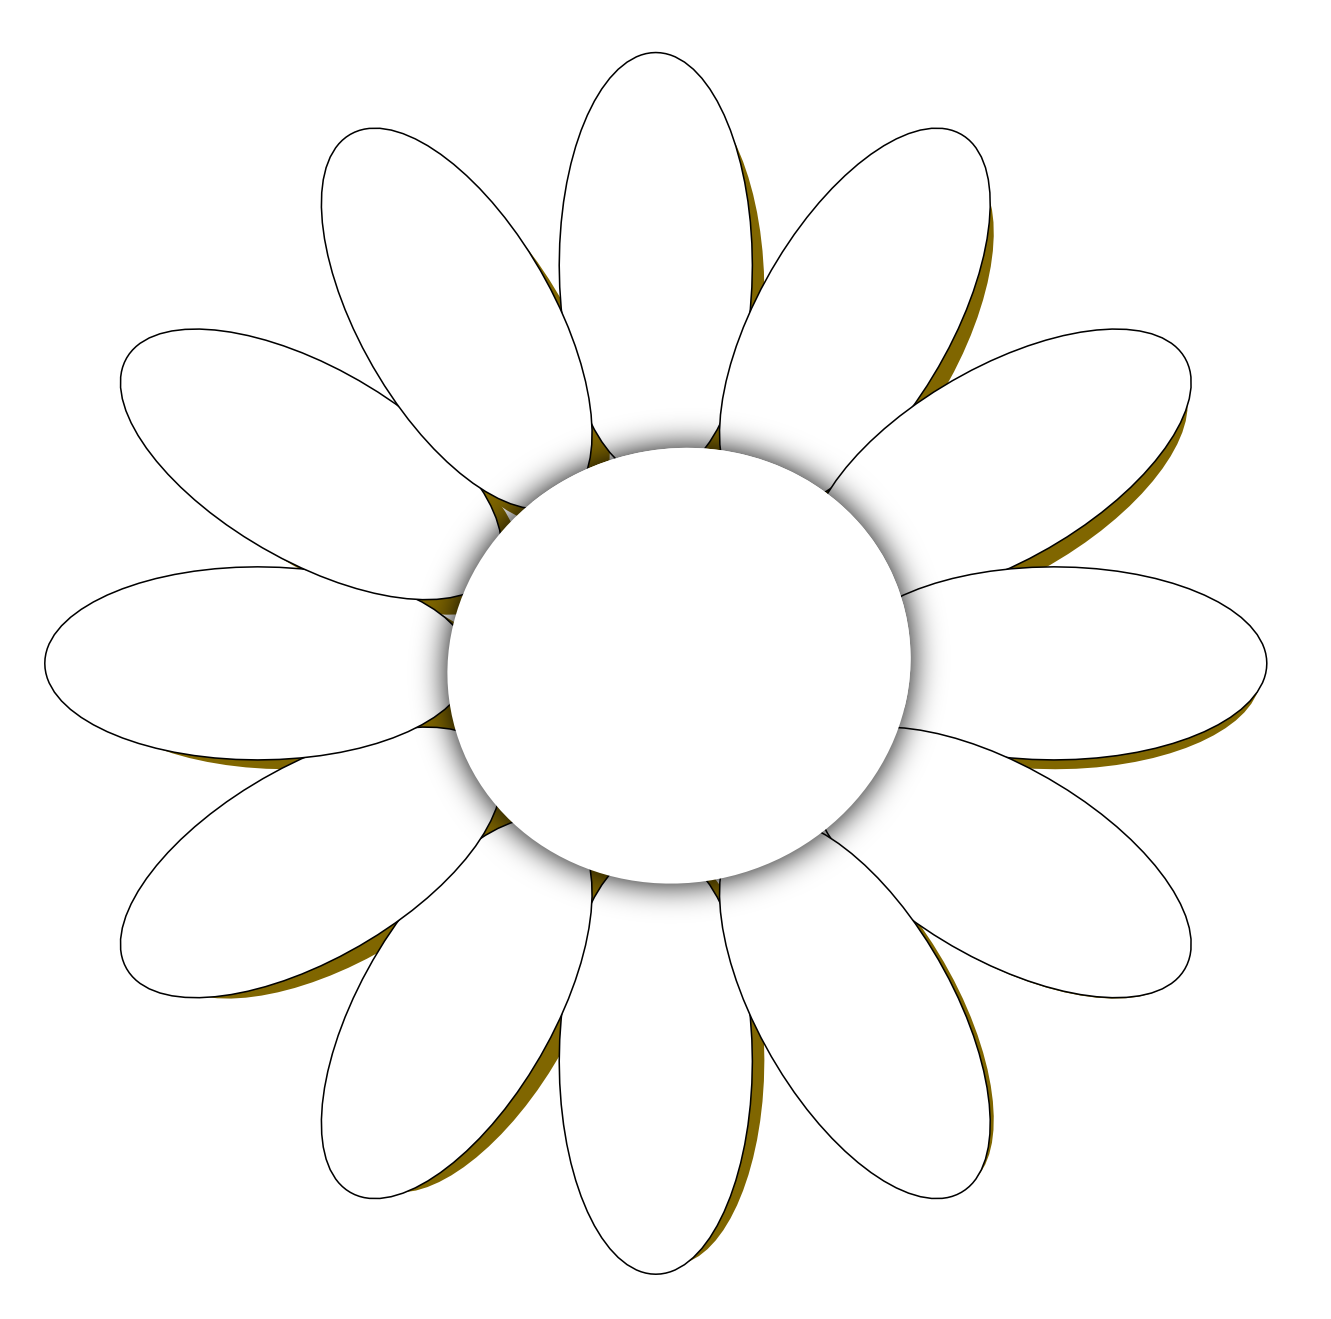 daisy flower 1 black white line art tattoo tatoo SVG ClipArt Best ClipArt